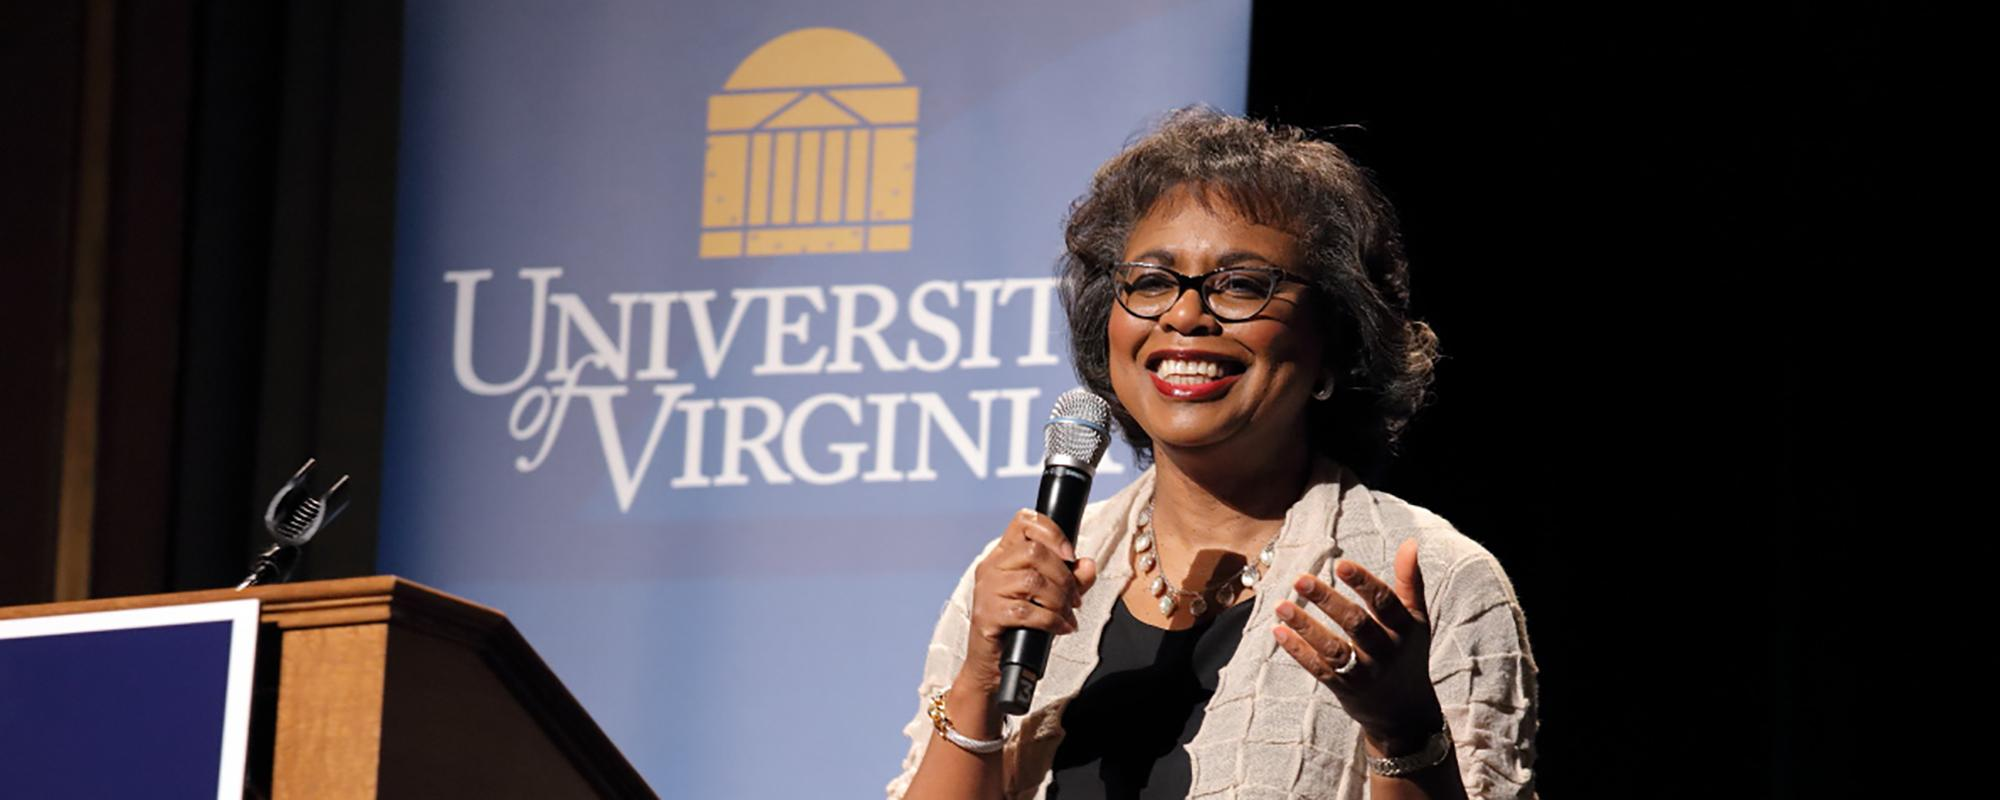 Anita Hill stands next to podium smiling and holding a microphone, gesturing with her left hand.